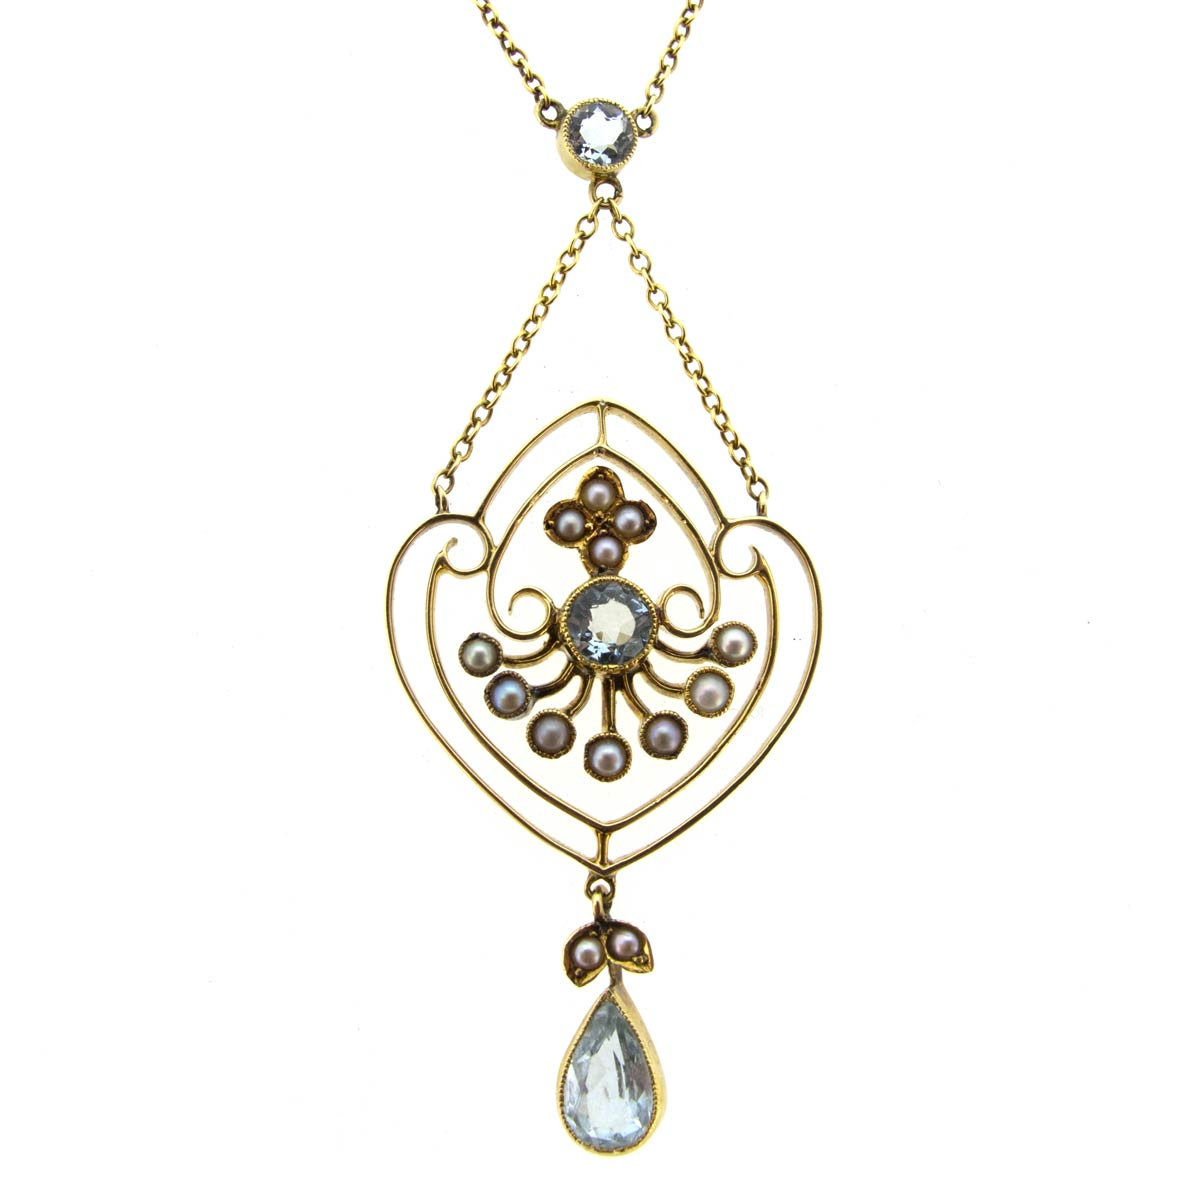 Edwardian Aquamarine & Pearl Necklace